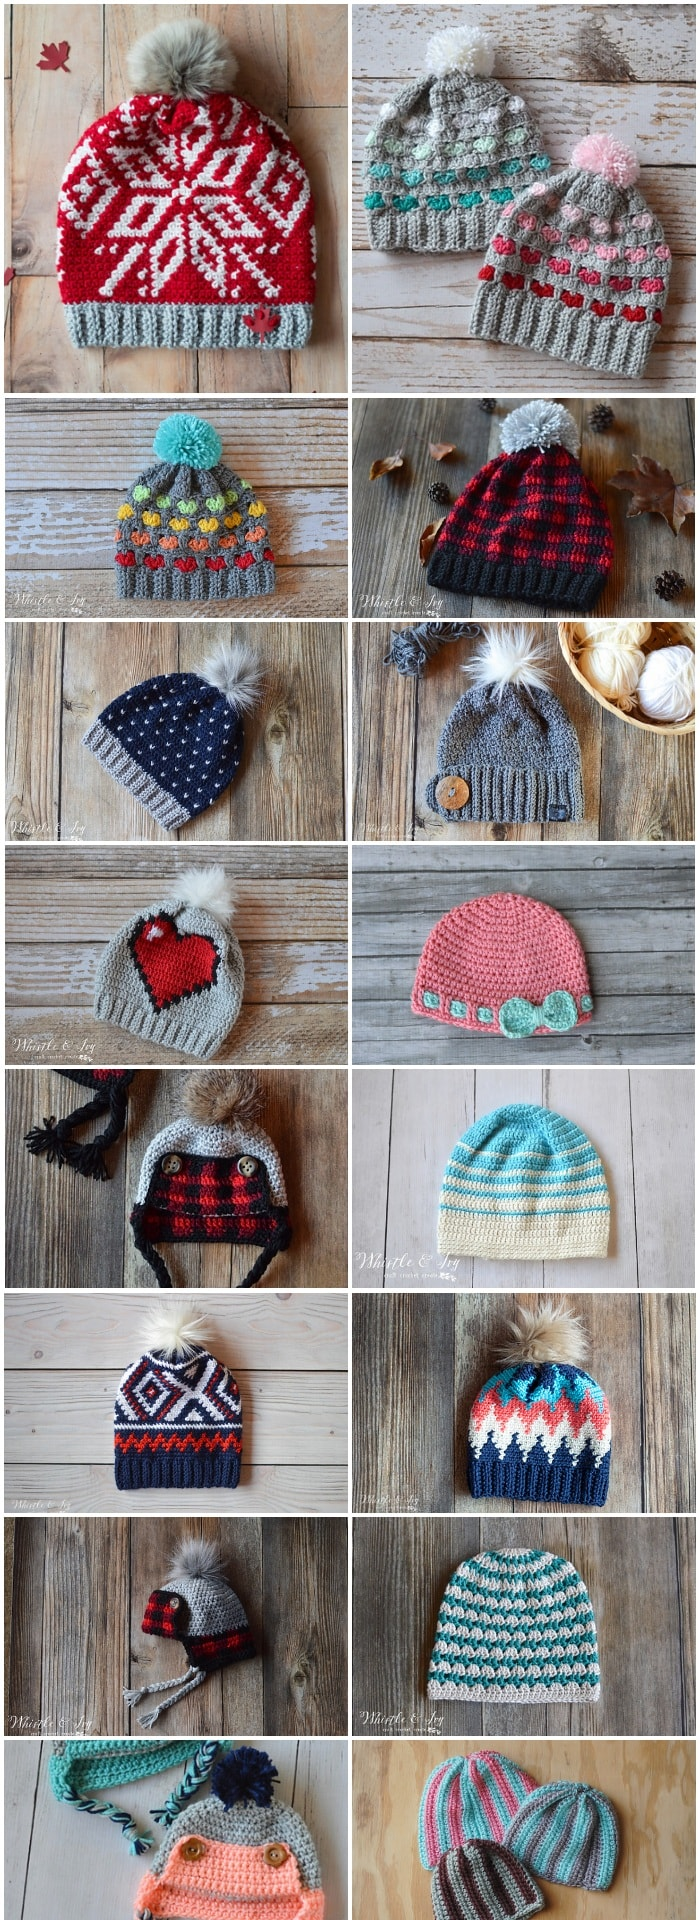 df4a5df8bf0 16 super cute and trendy Free Crochet Hat Patterns to keep you warm and  cozy all